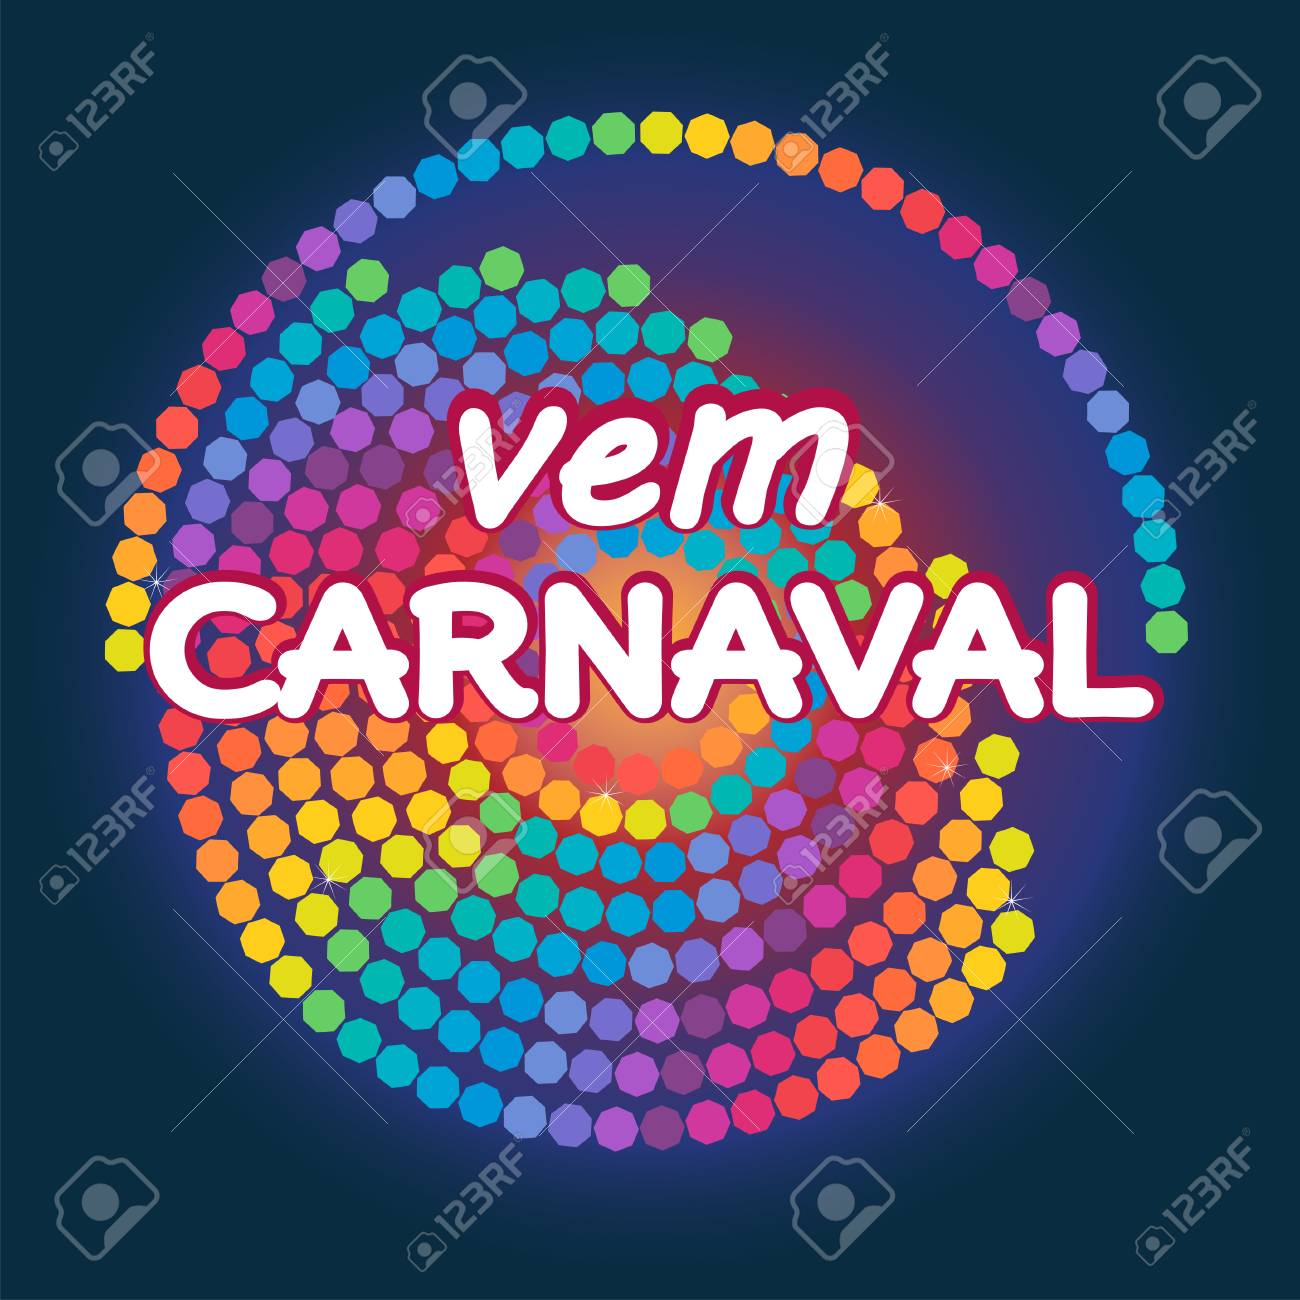 Vem Carnaval is Canival is coming in portuguese. Modern background vector. Confetti festive colorful carnival graphic design illustration. - 93233435